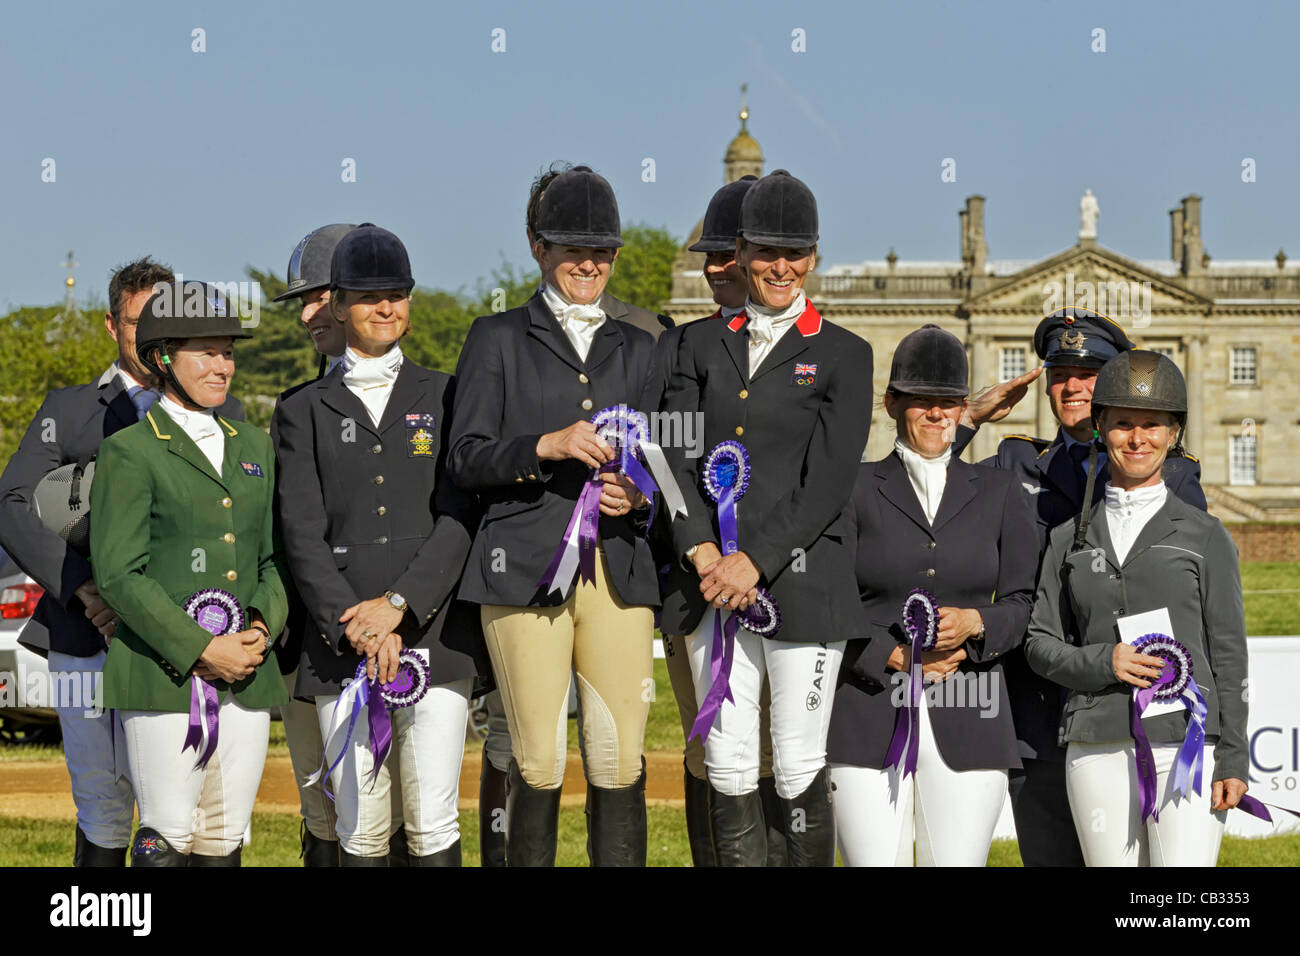 The podium presentation for the CCIO 3 star nations cup at the 2012 Subaru Houghton International Horse trials in - Stock Image